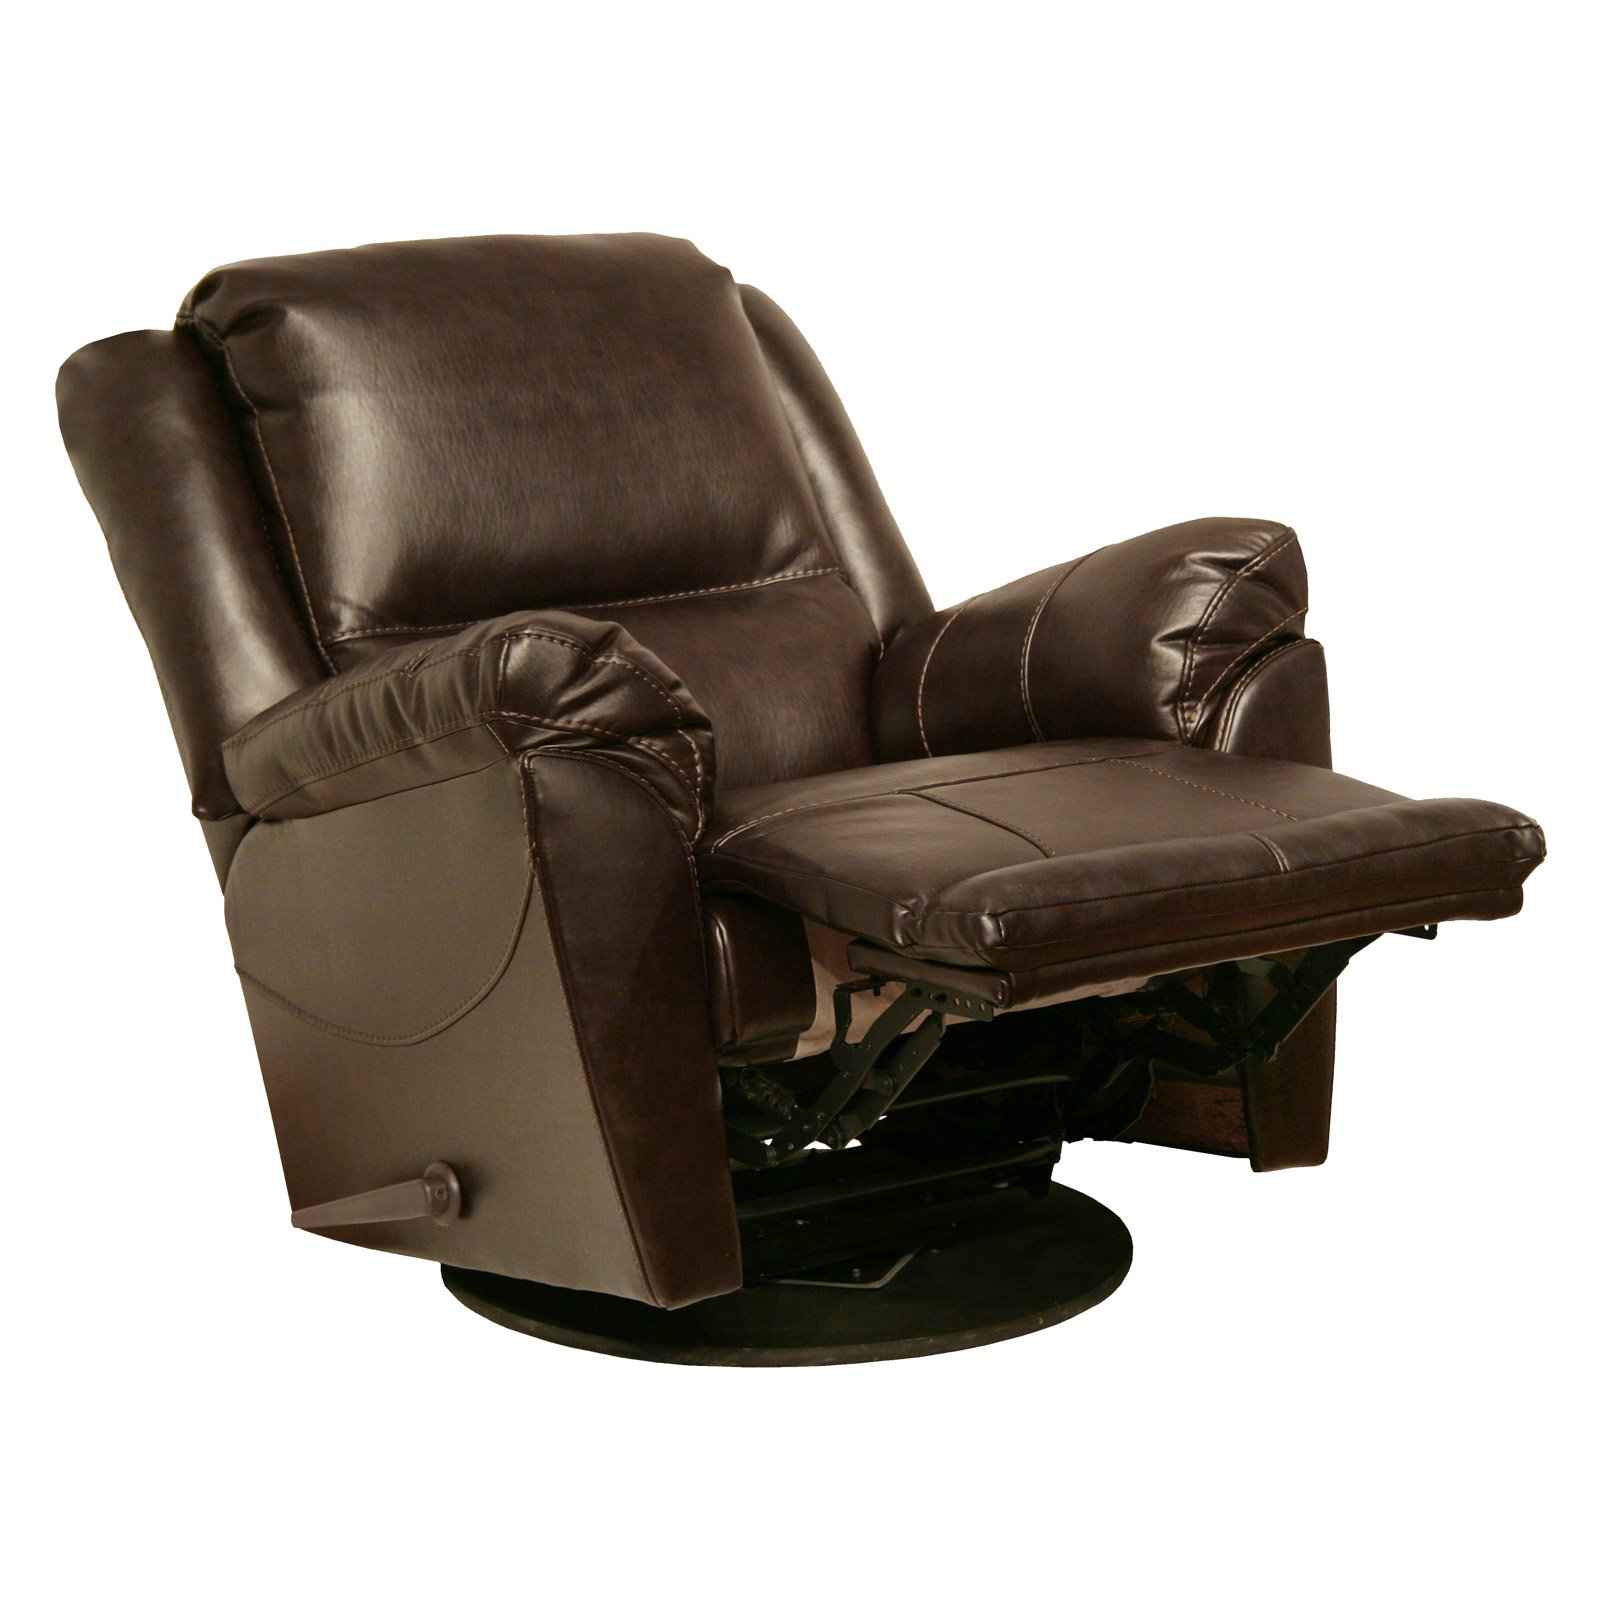 Catnapper Maverick Chaise Leather Swivel Glider Recliner